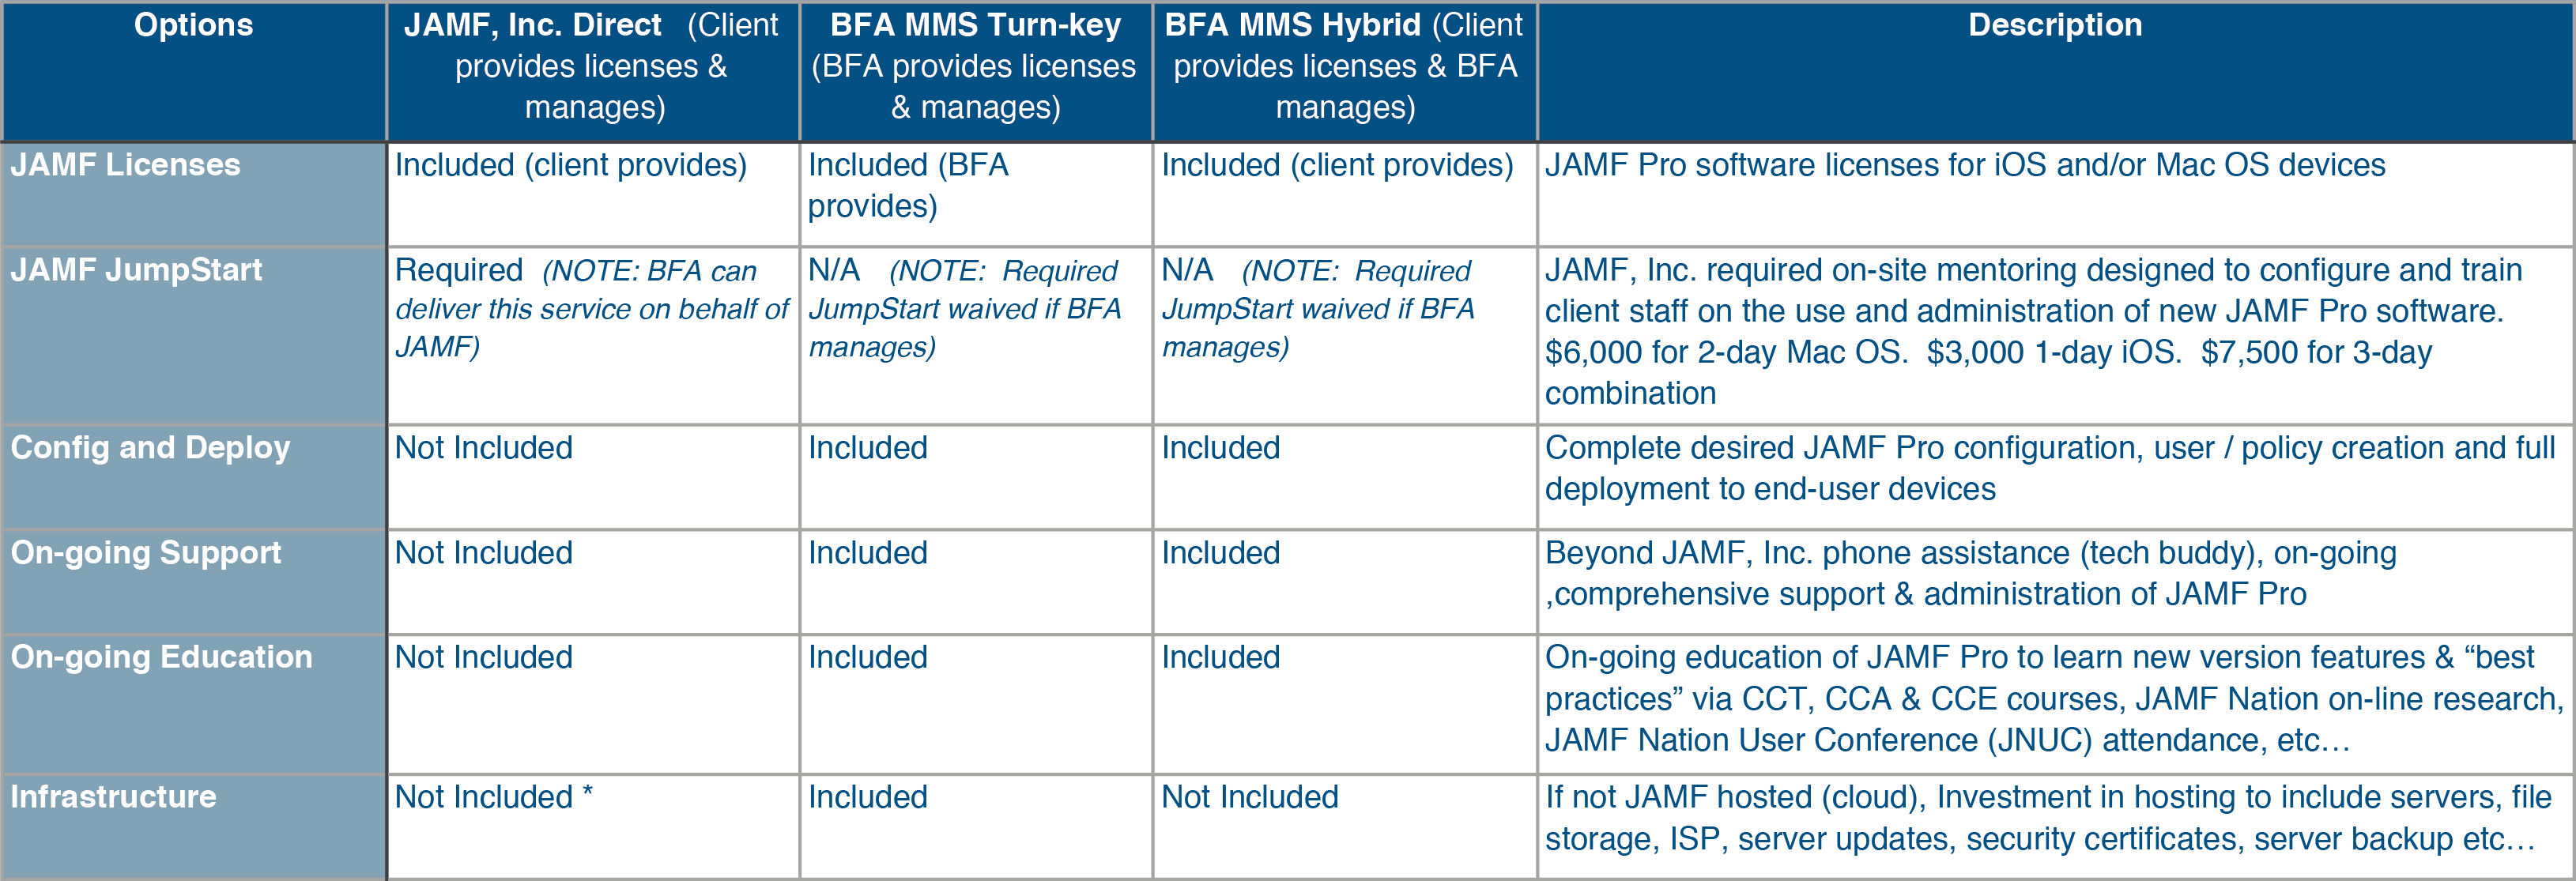 Jamf Pro Support Options Matrix